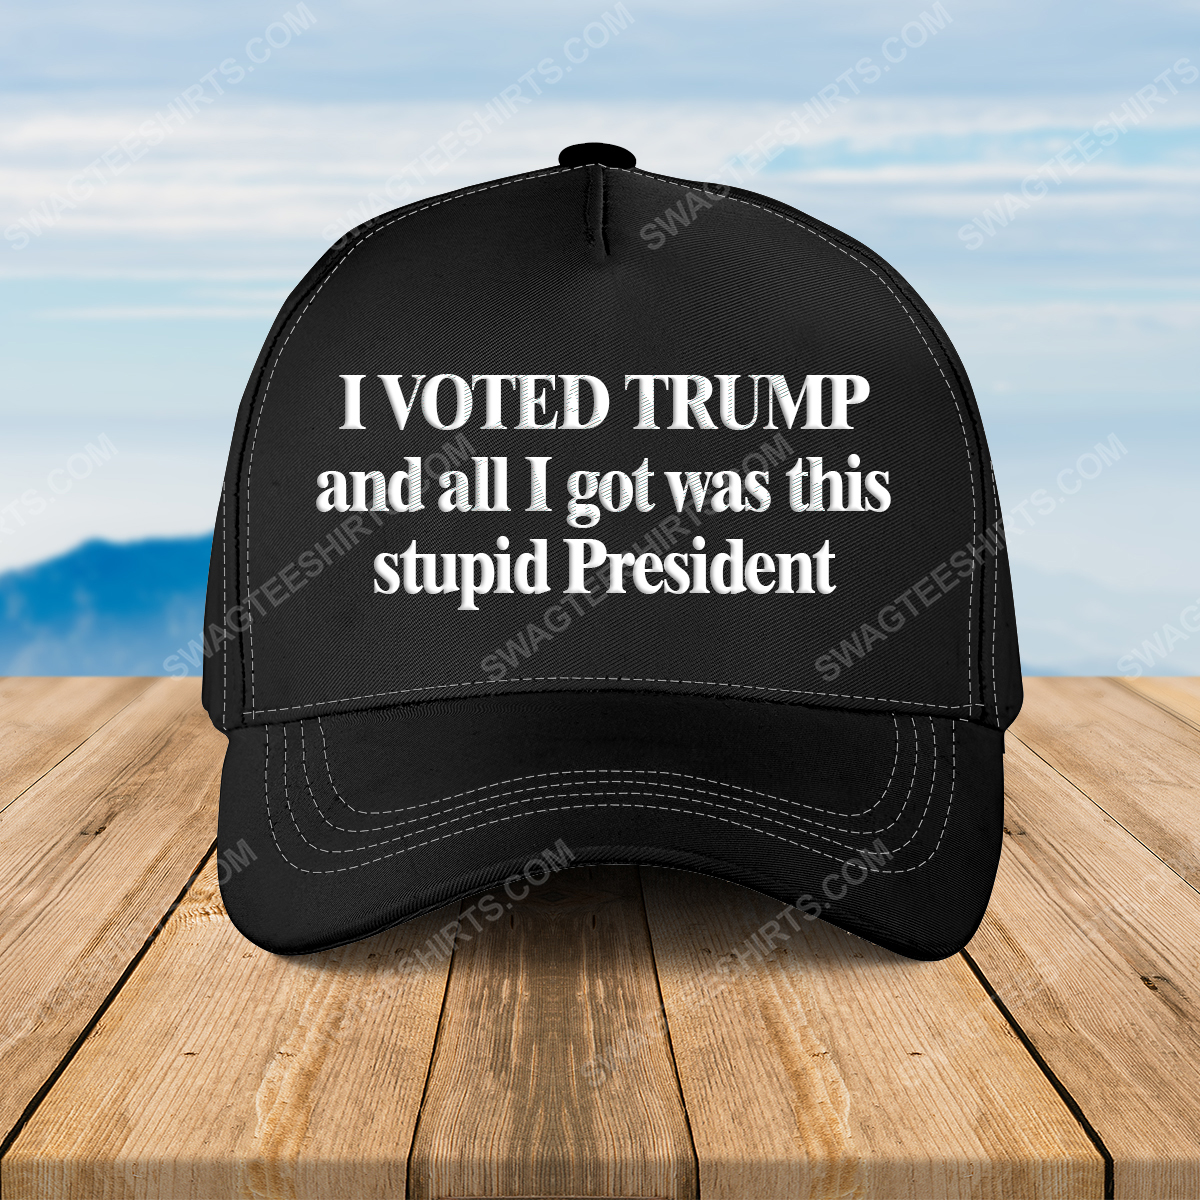 I voted trump and all i got was this stupid president full print classic hat 1